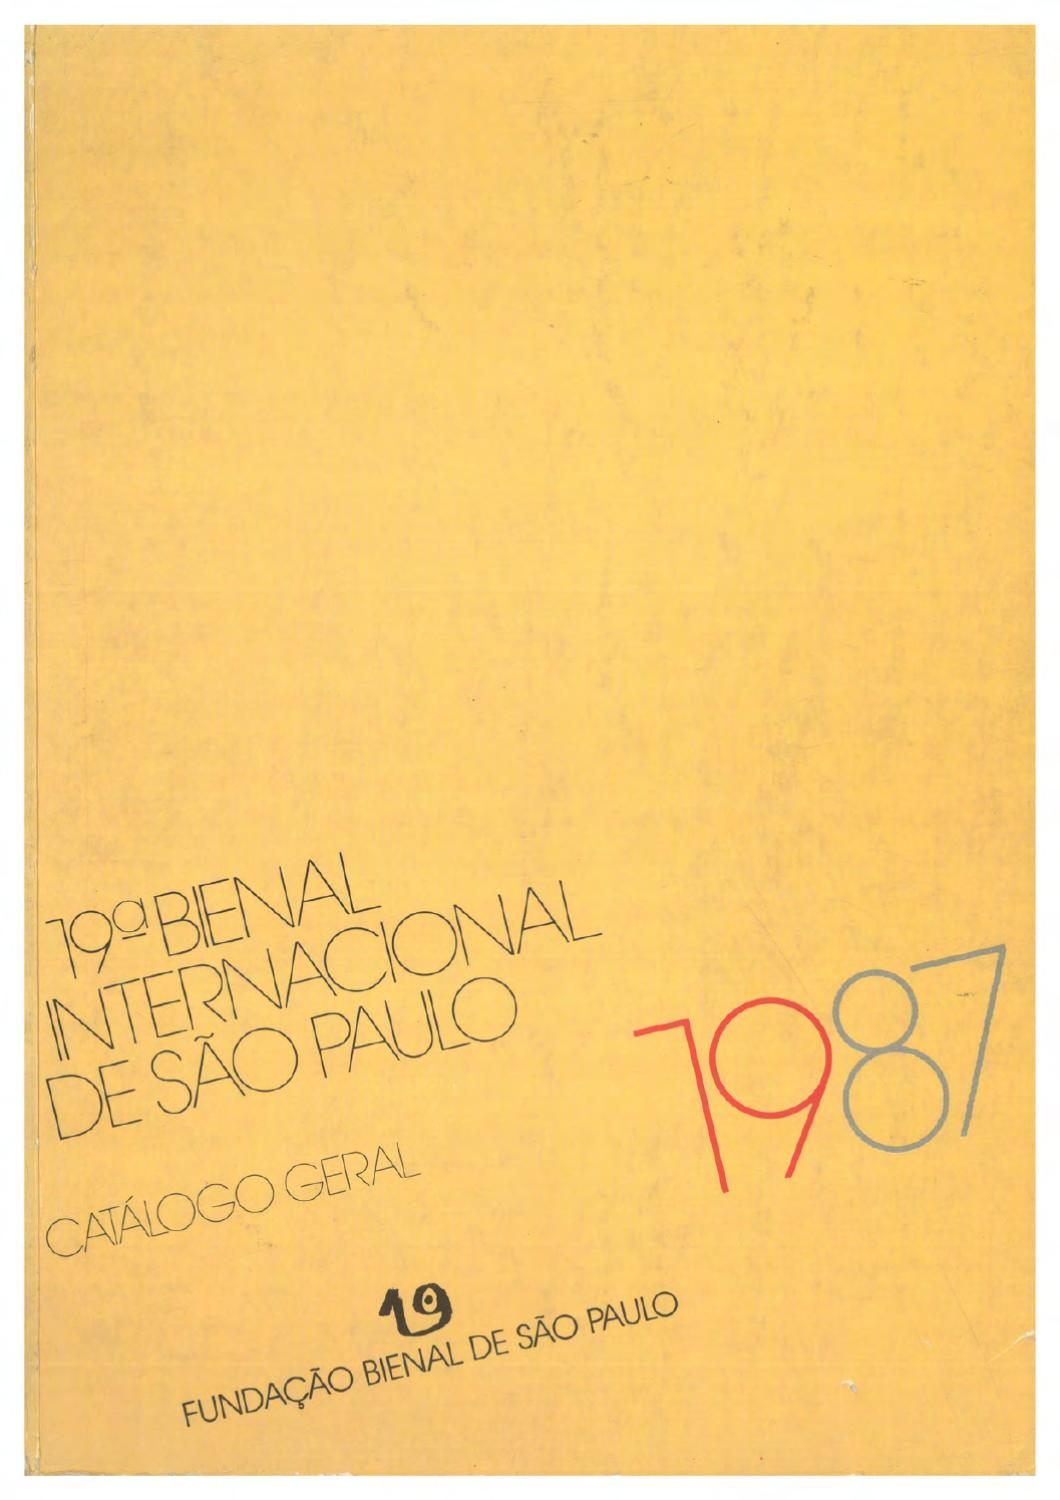 19 bienal de so paulo 1987 catlogo by bienal so paulo issuu stopboris Choice Image